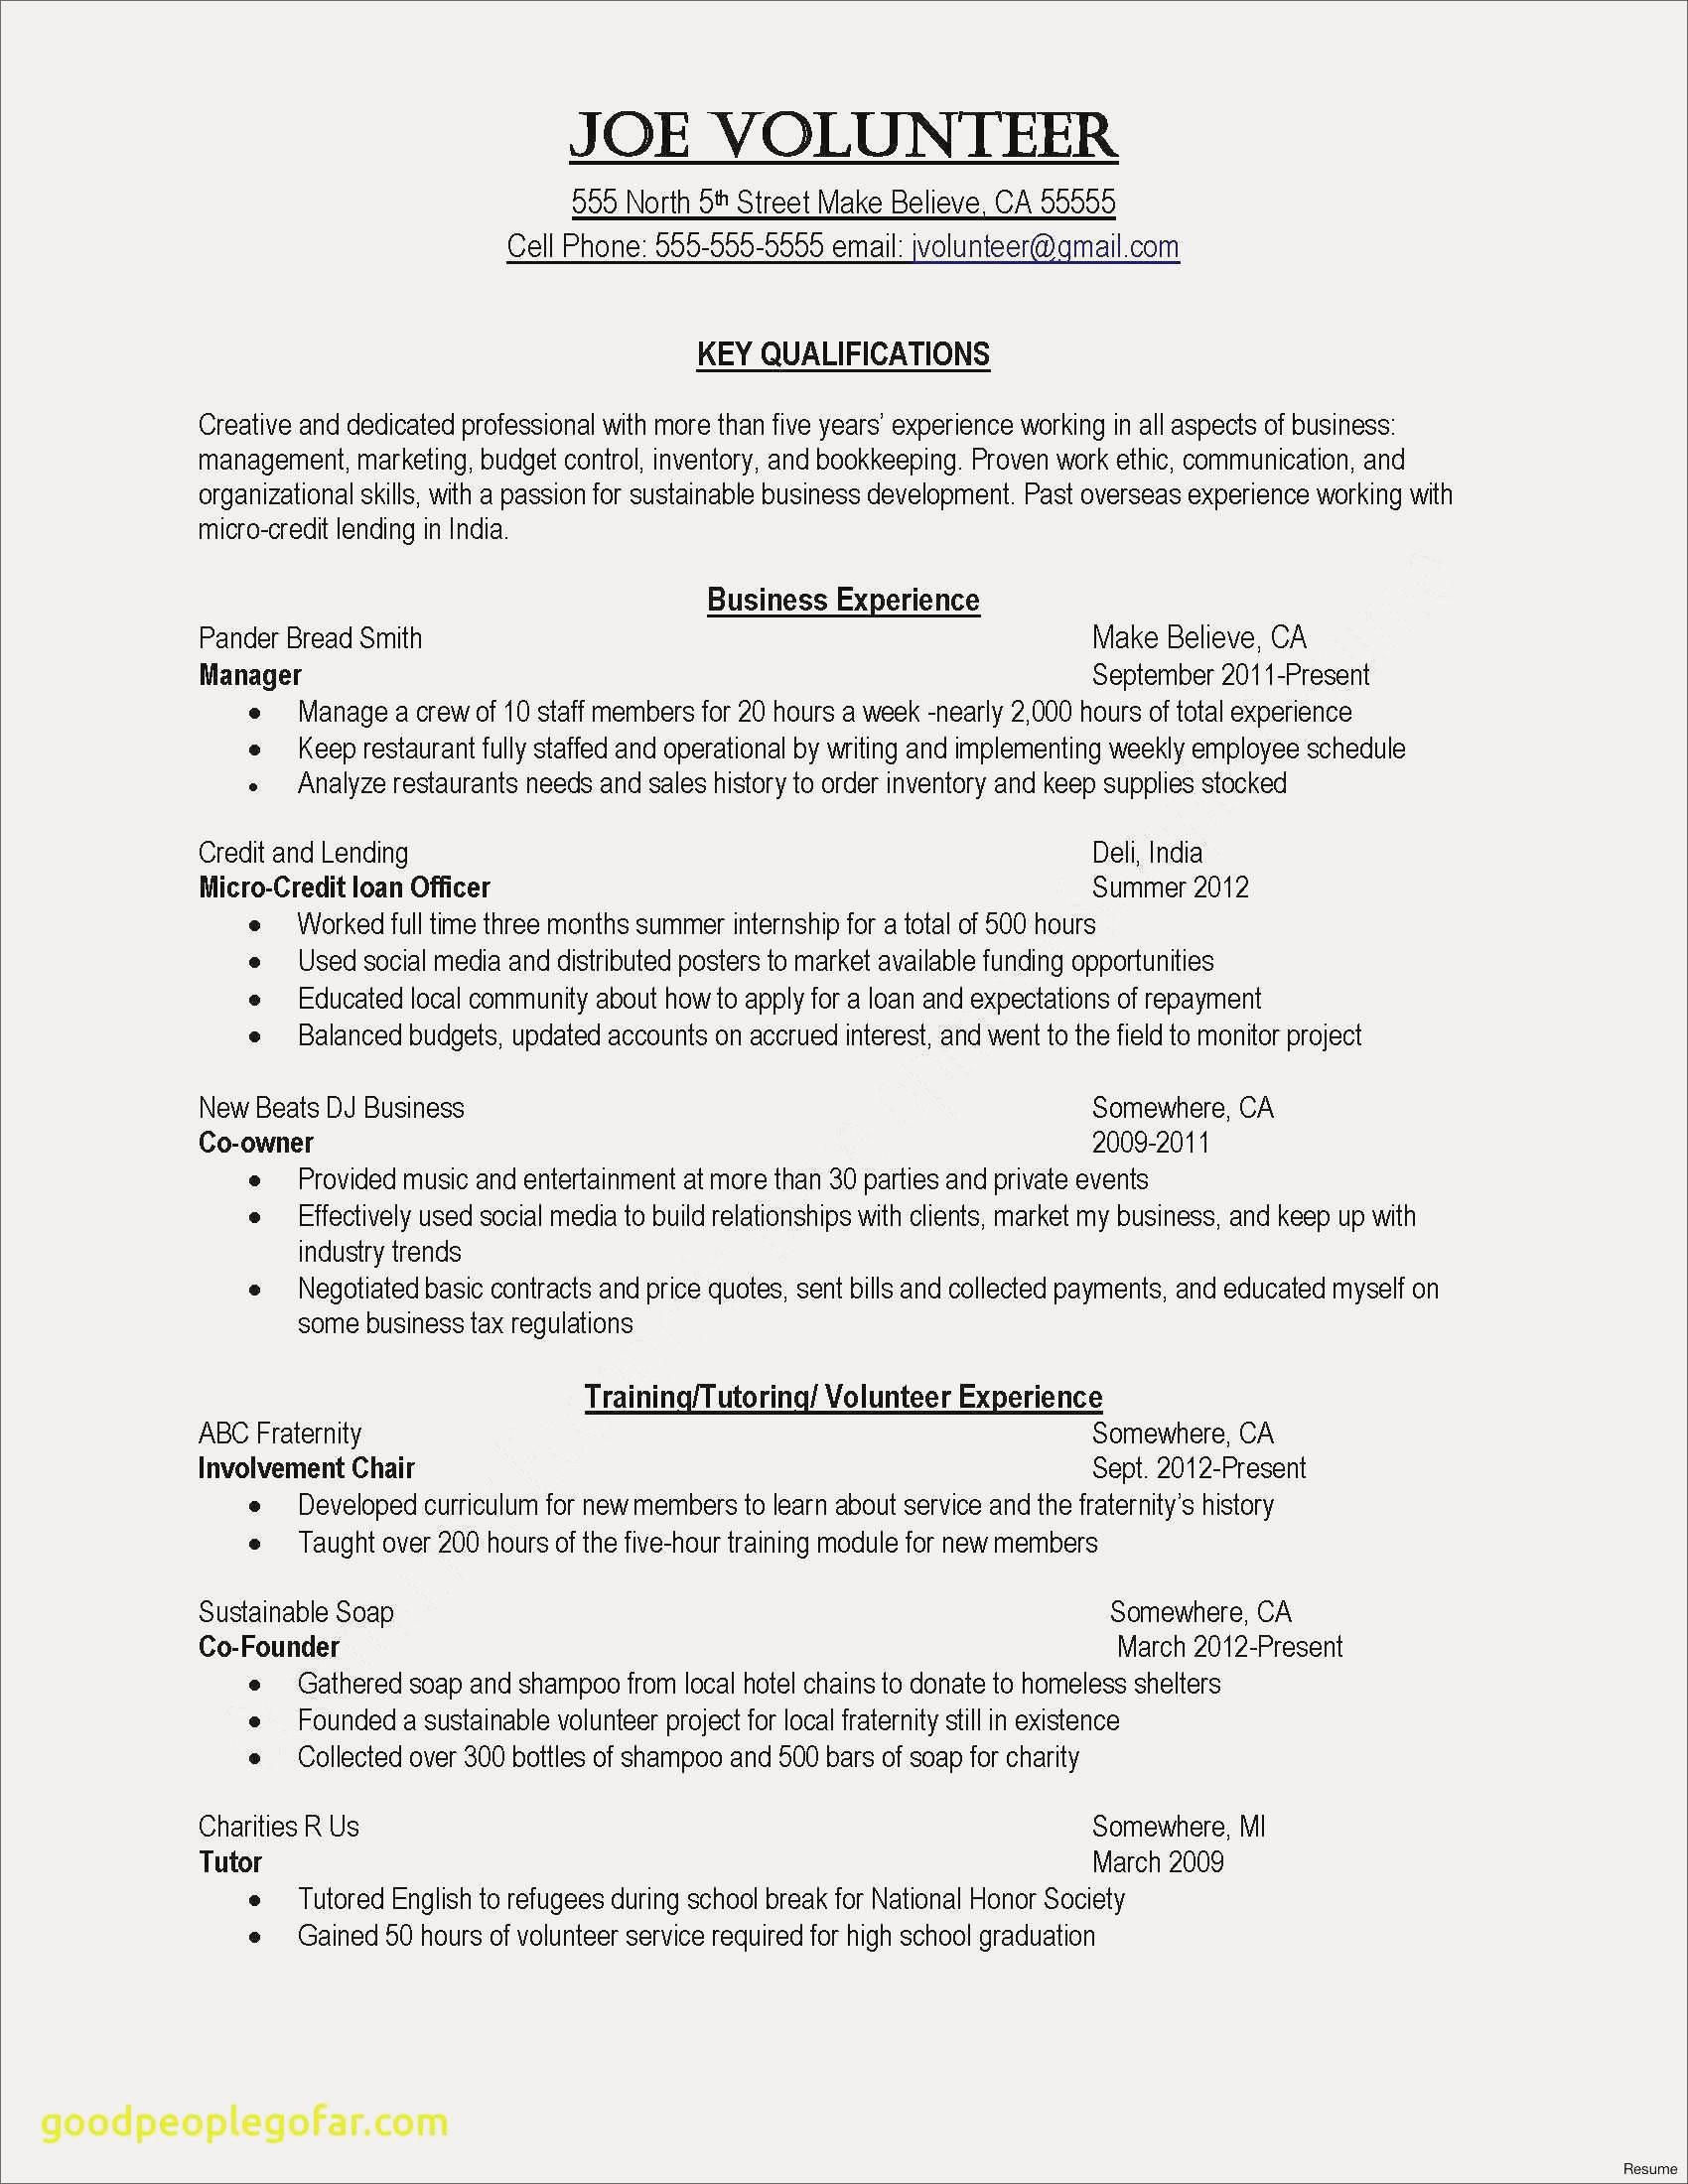 Sample Resume for Stay at Home Mom Returning to Work - New Stay at Home Mom Resume Sample